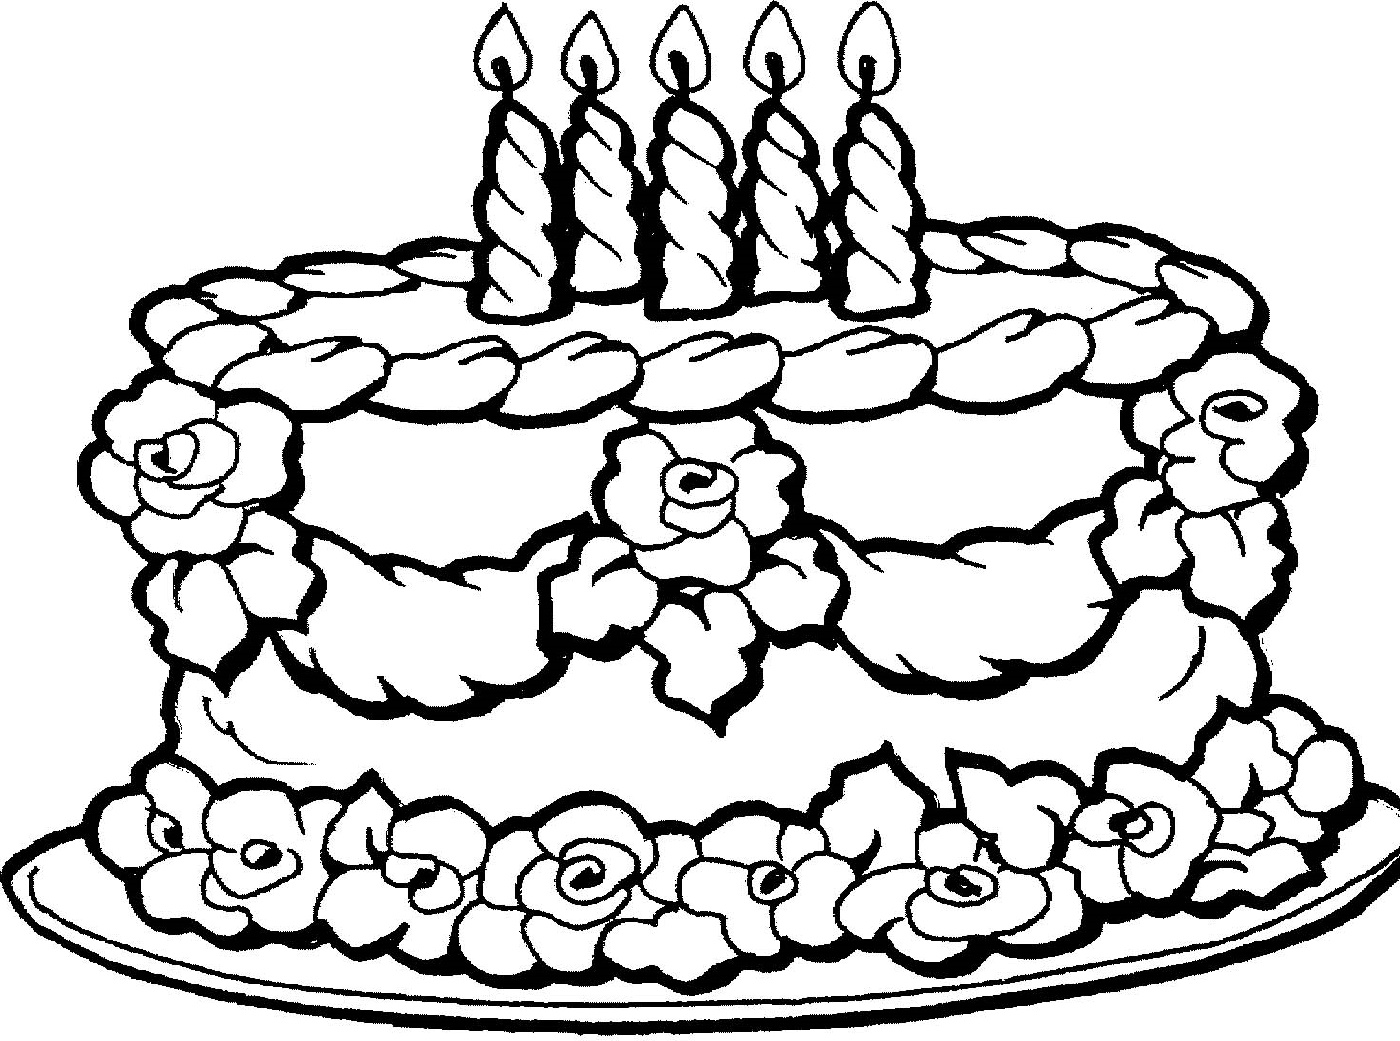 Cake Coloring Pages Free